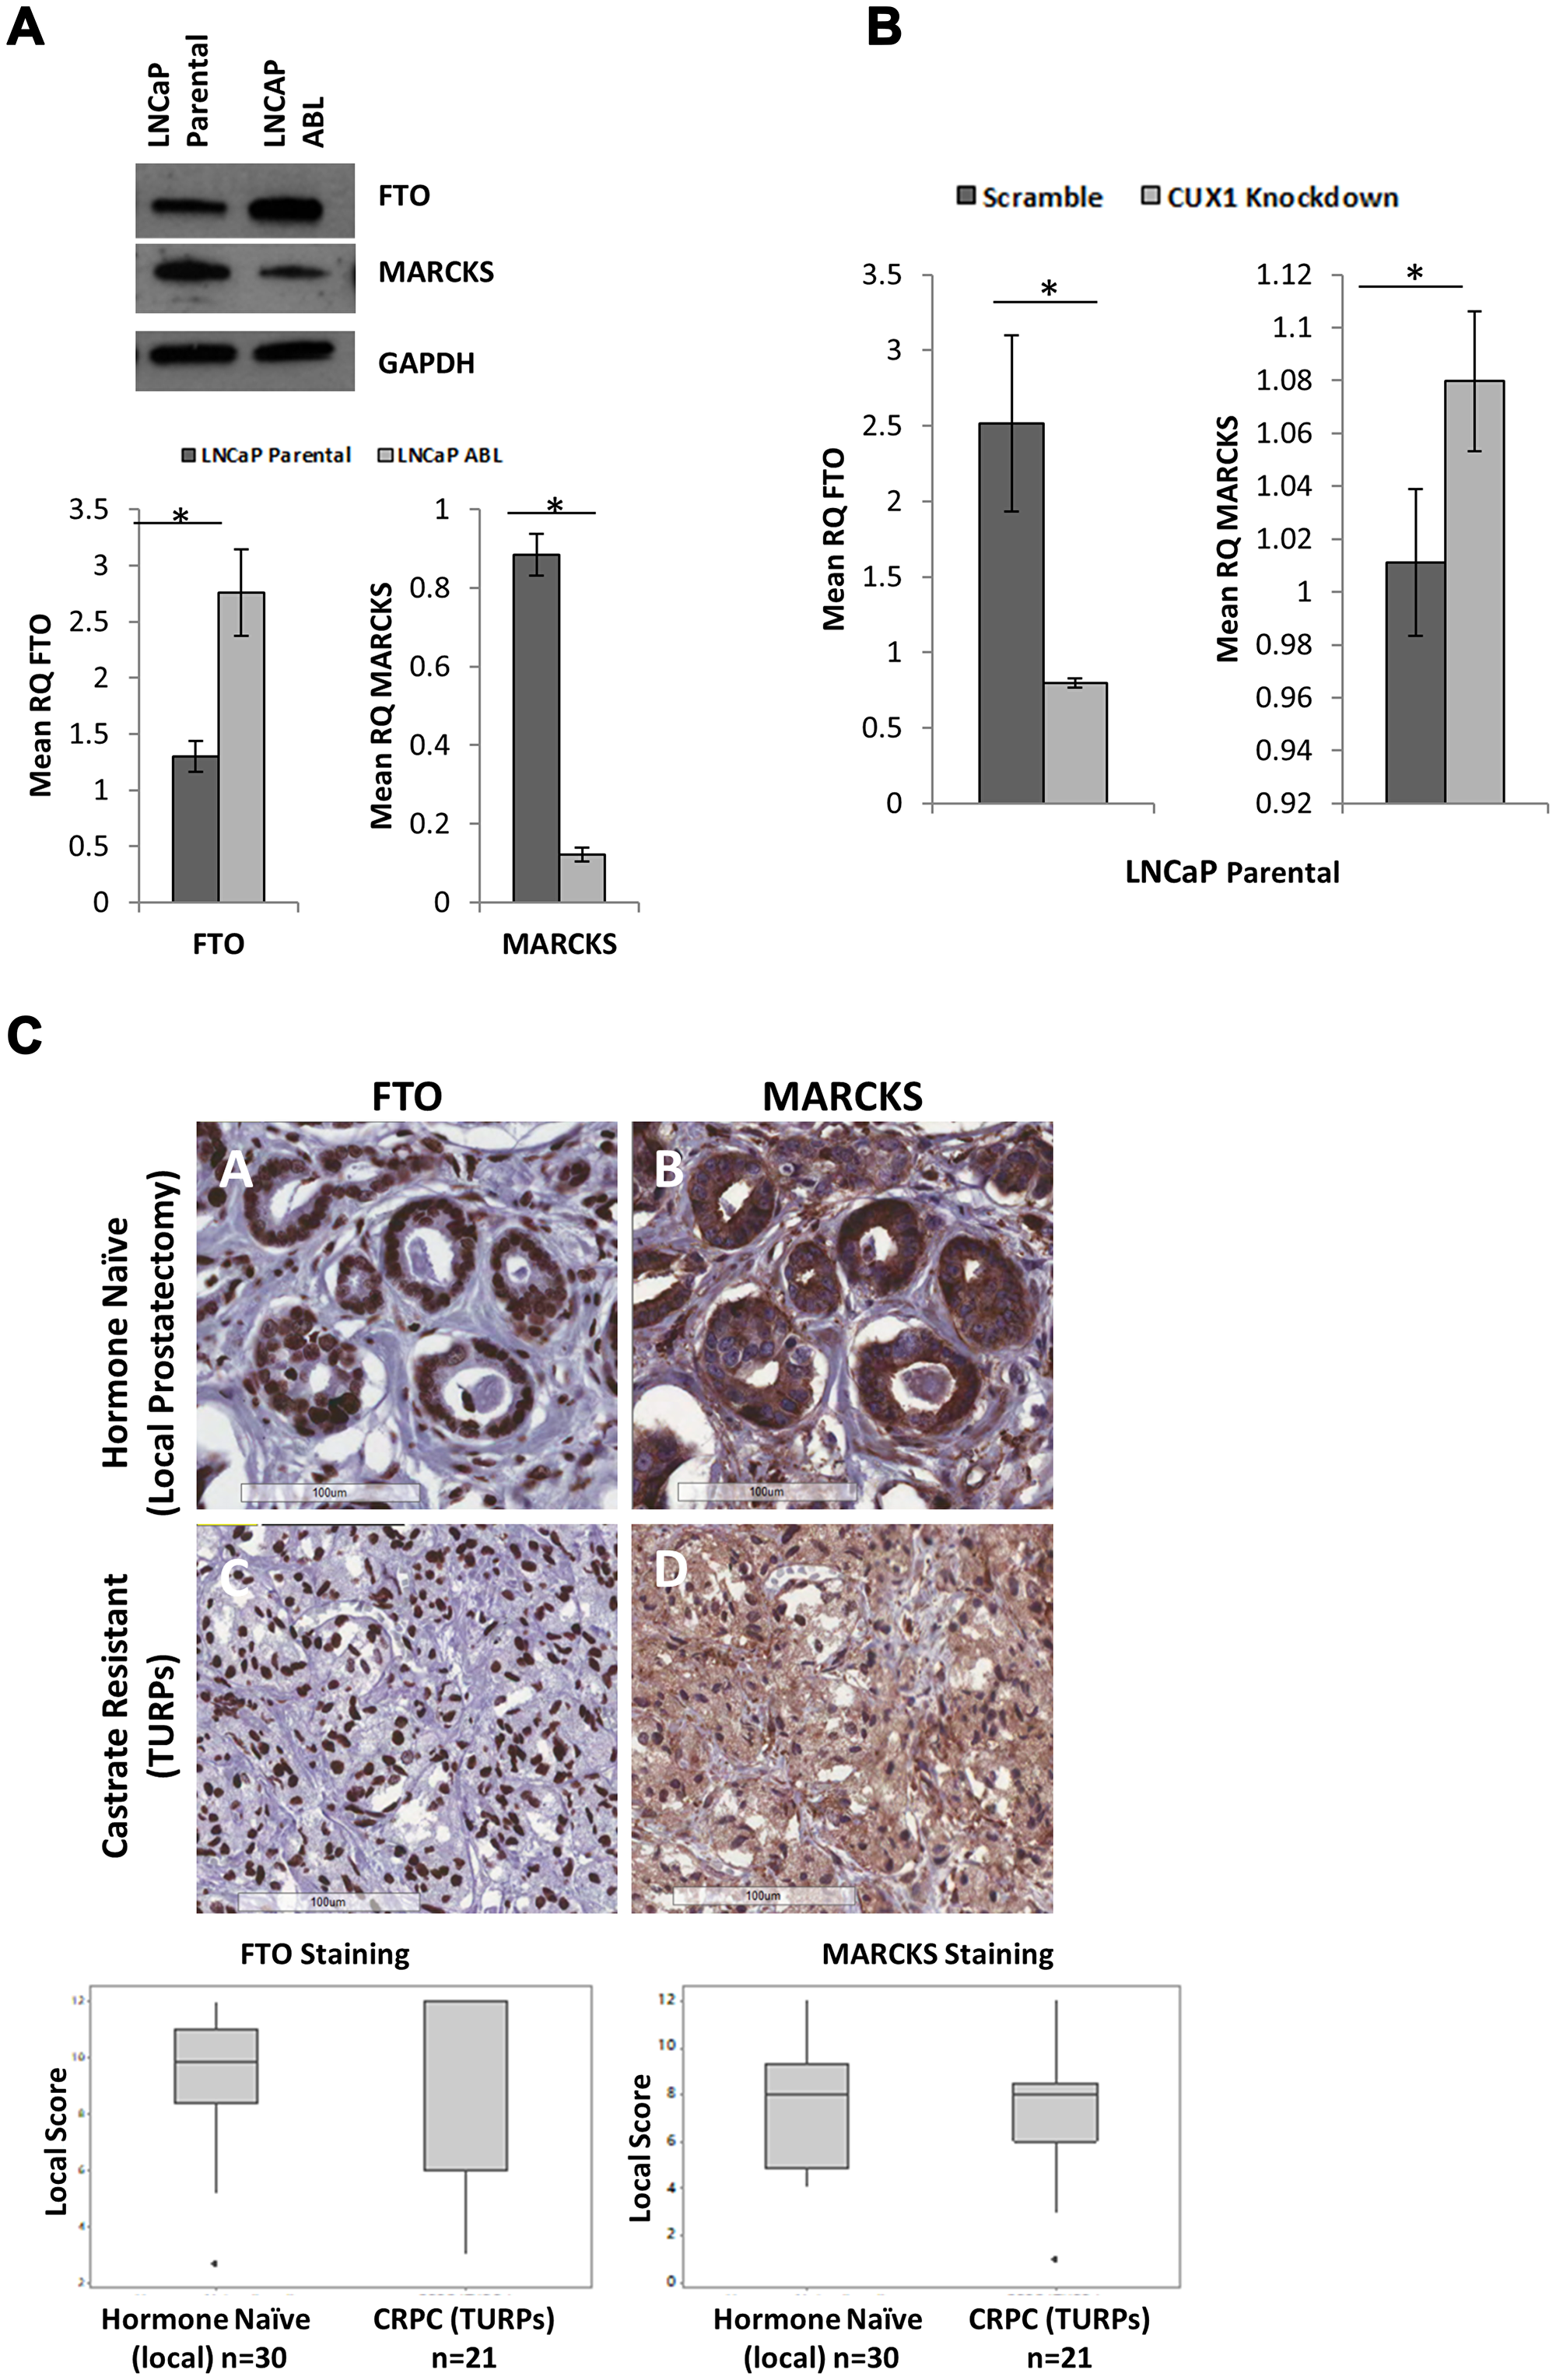 Surrogate Markers of CUX1 are not differentially expressed in hormone naïve and castrate resistant prostate cancer.